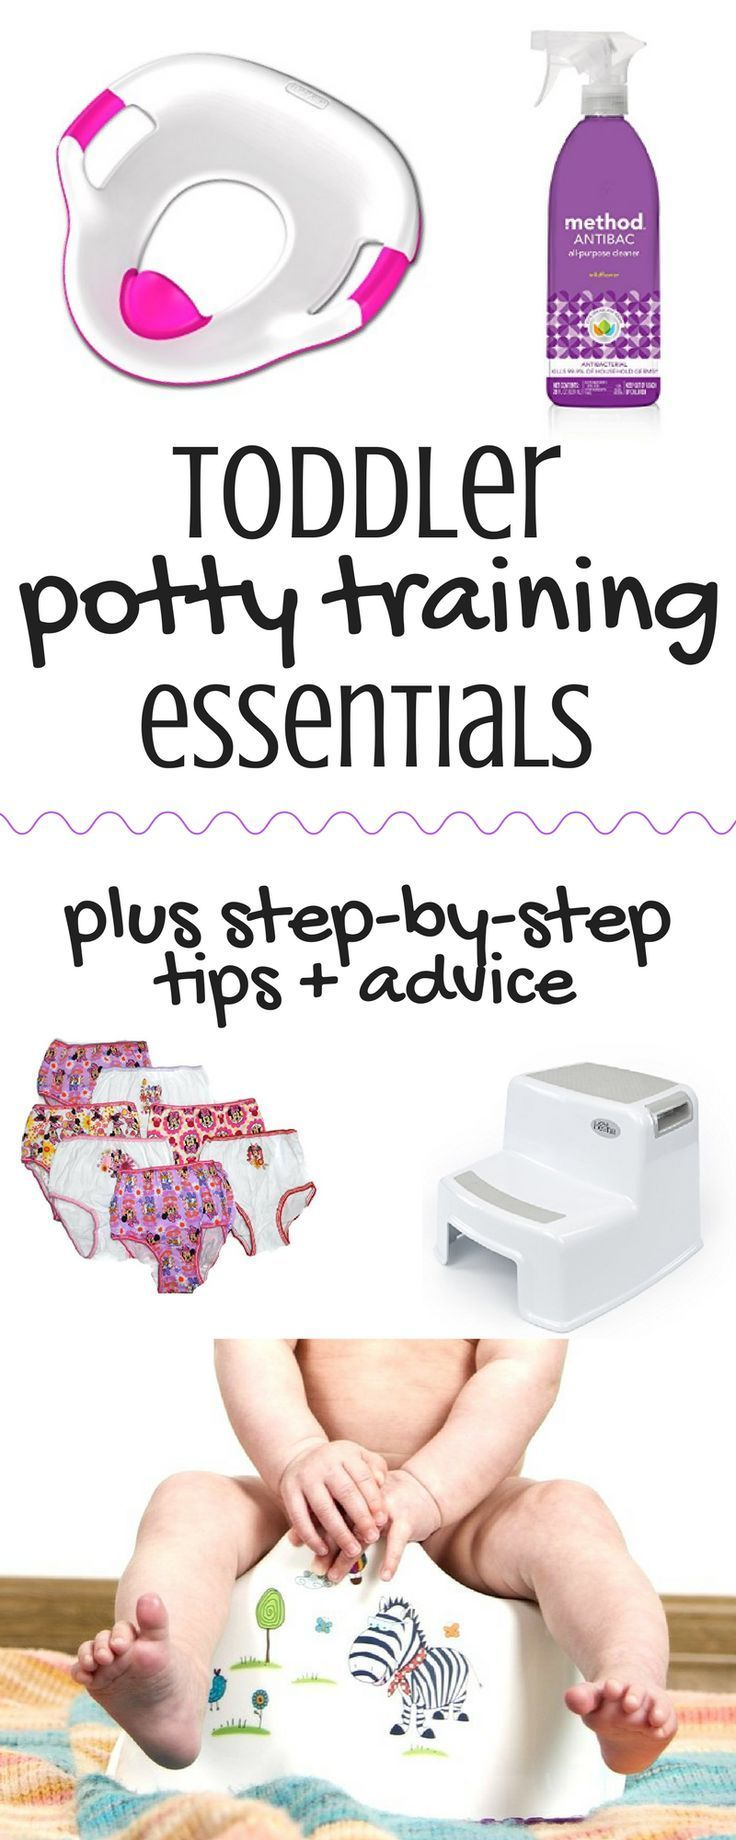 These are the best potty training tips I've seen! This post has so much info I've never read anywhere else! Toddler | Potty Training | Parenting Tips | Potty Training Essentials | Toddler Potty Seat | 2 Year Old | Potty Training Tips |